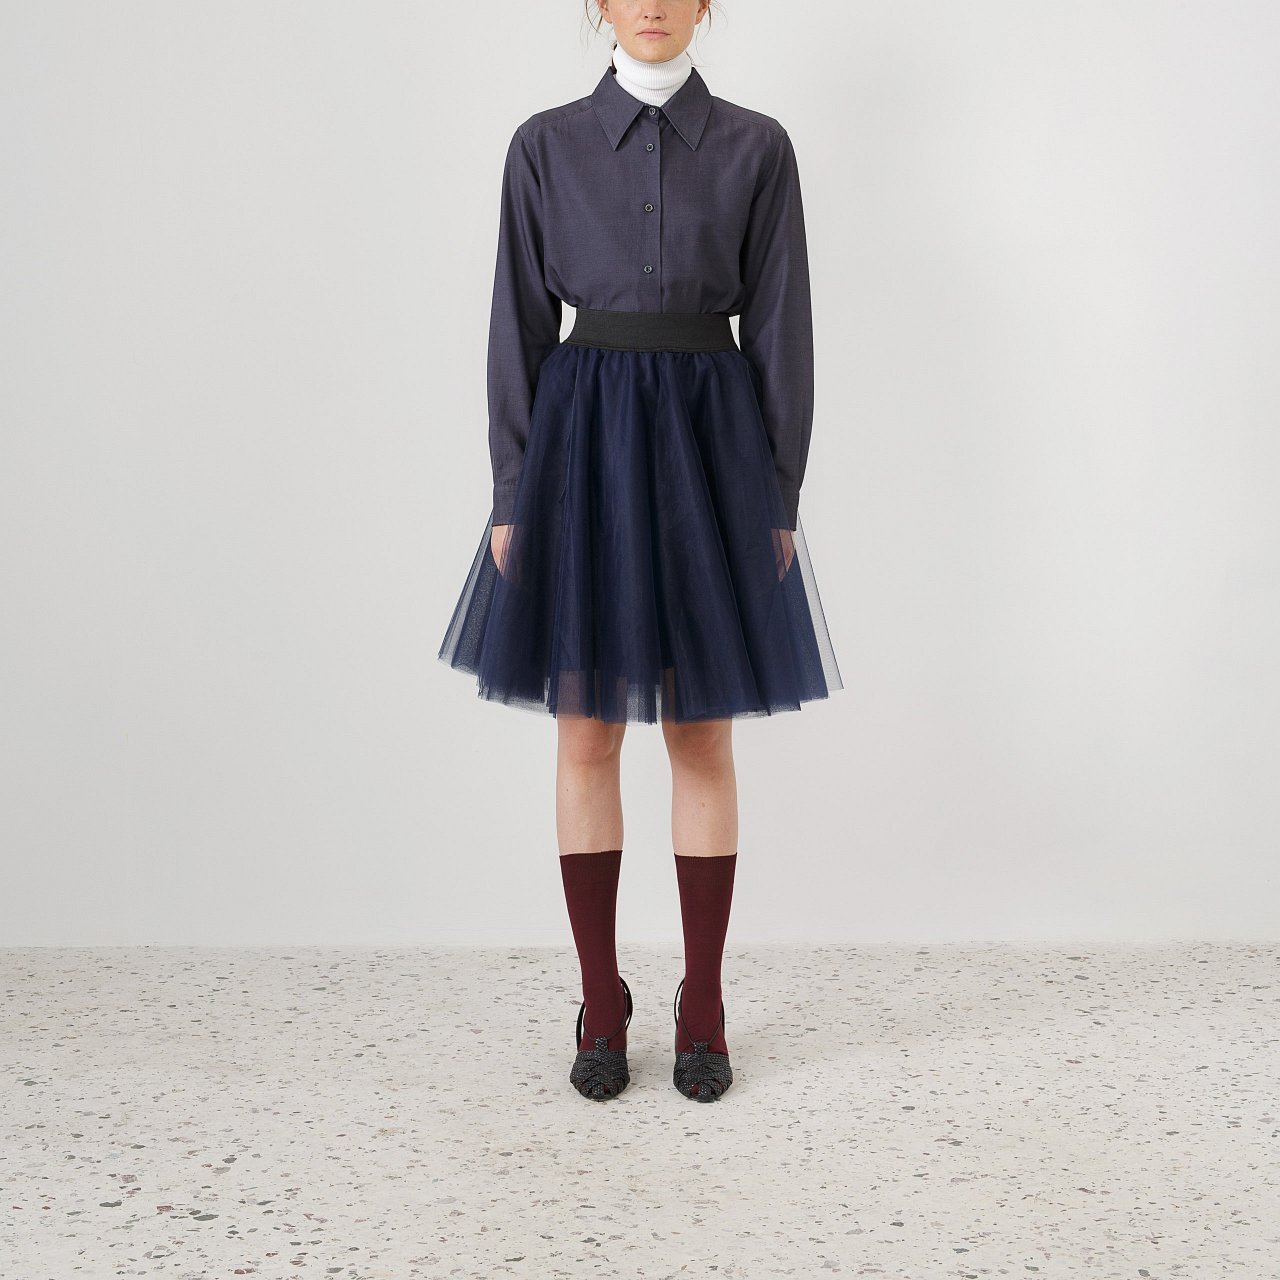 Product preview: Tulle Tutu Skirt Navy Blue Short